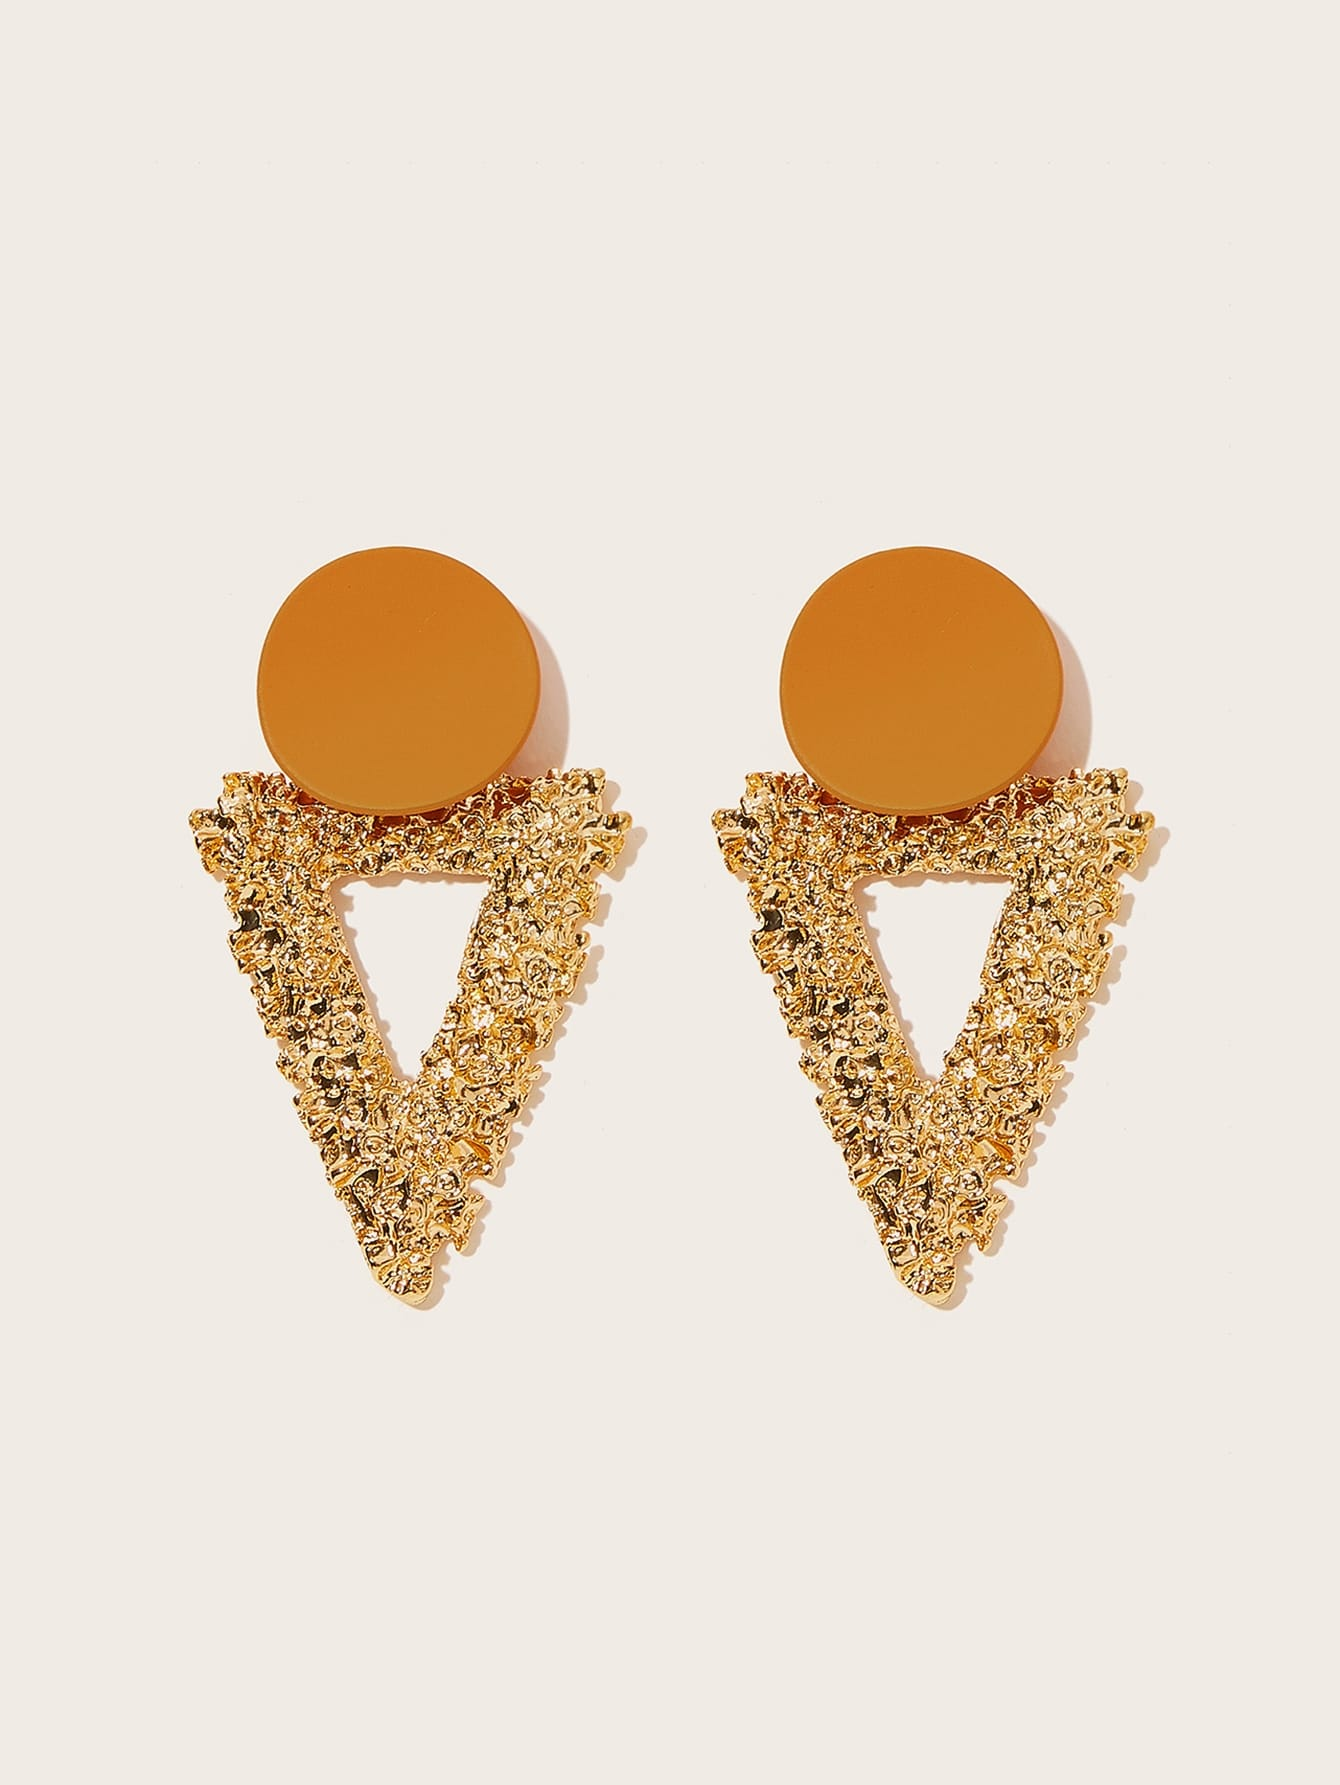 Desi Round & Textured Triangle Drop Earrings 1pair